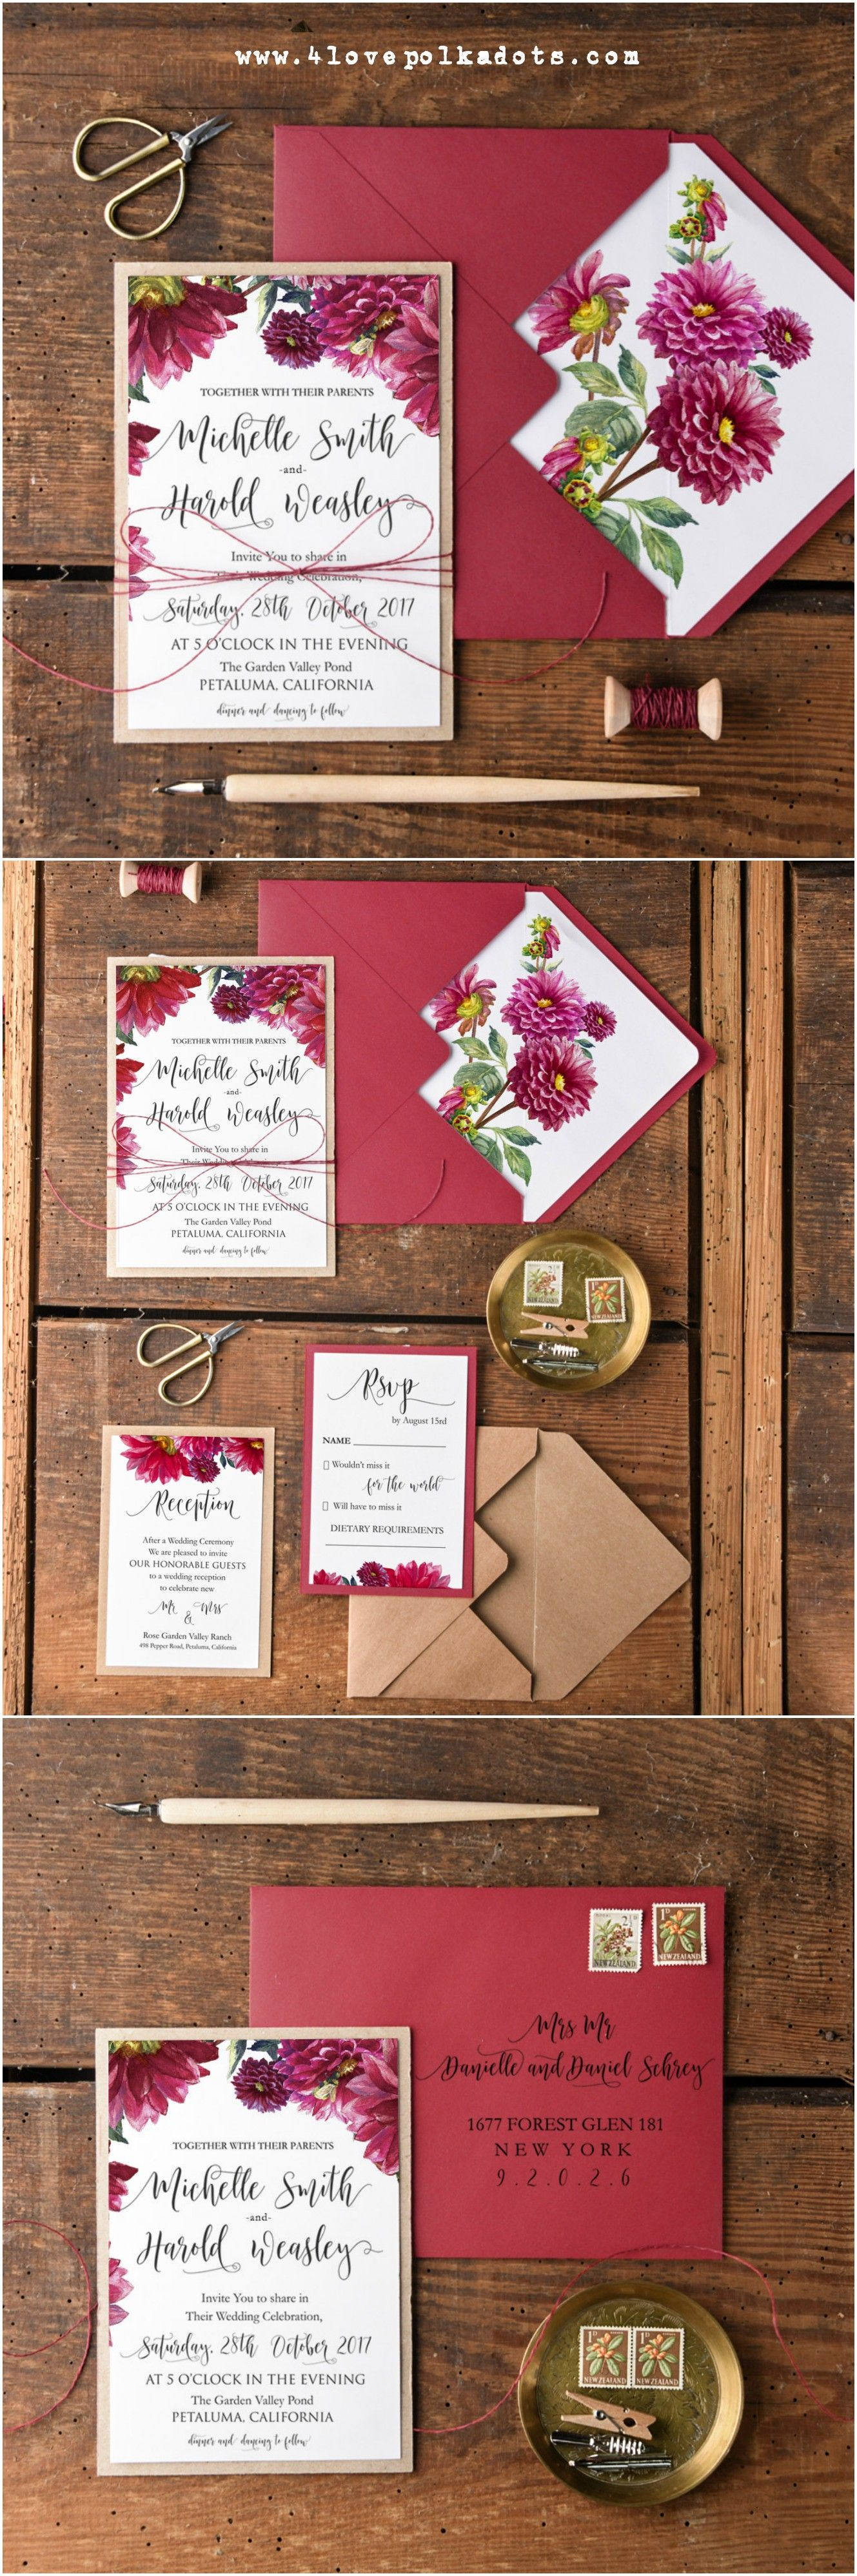 Wedding invitations with Dahlias flowers #weddingideas ...